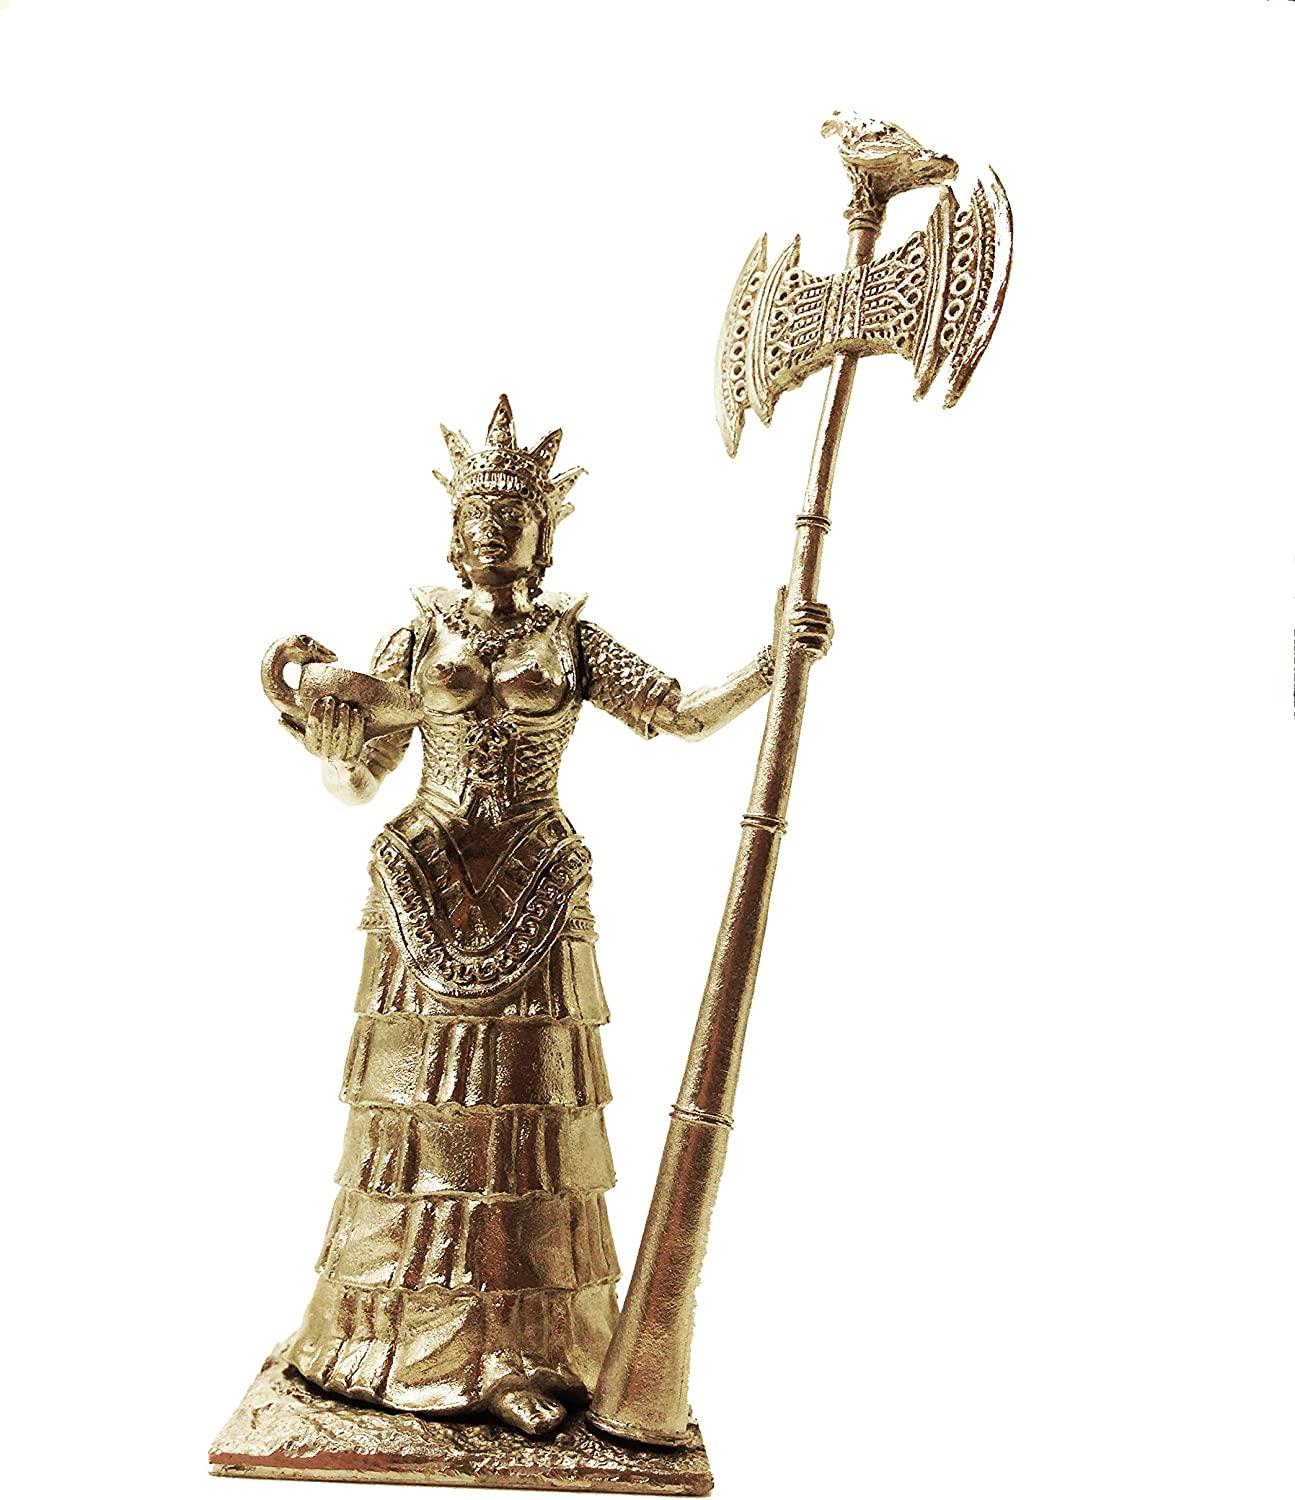 Trojan War 13-14 Century BC Theano, The Priestess of The Temple of Athena Tin Metal 54mm Action Figures Toy Soldiers Size 1 32 Scale for Home Décor Accents Collectible Figurines Item  C5010